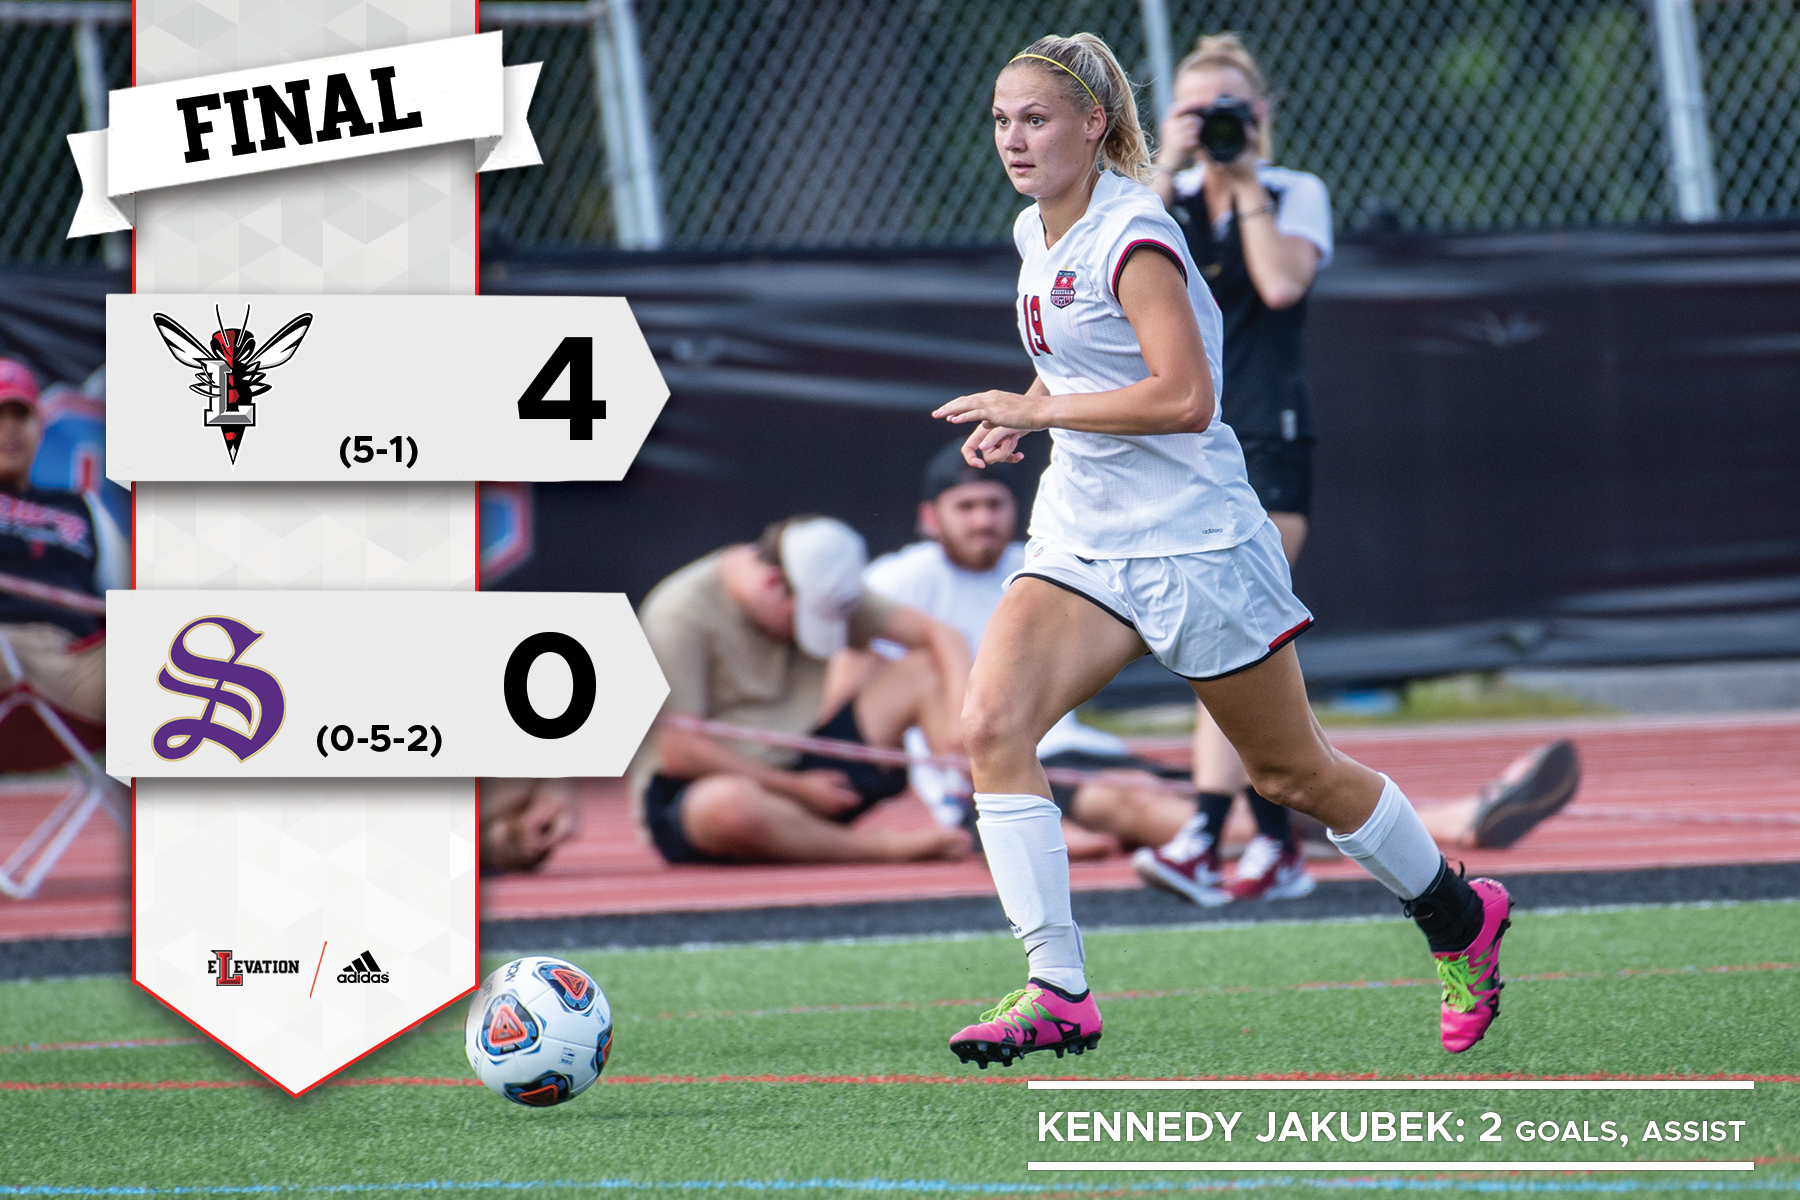 Kennedy Jakubek dribbes the soccer ball. Graphic showing Lynchburg 4-0 win over Sewanee FINAL.